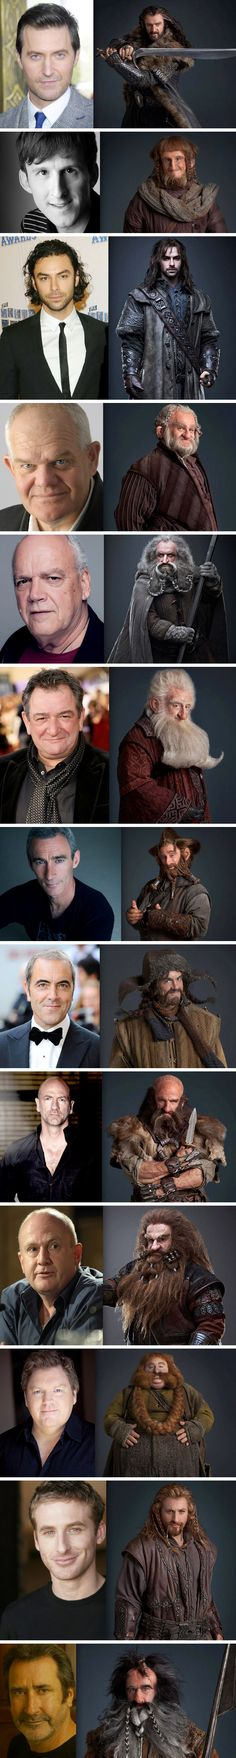 The Hobbit dwarves, in and out of make-up.  So awesome!